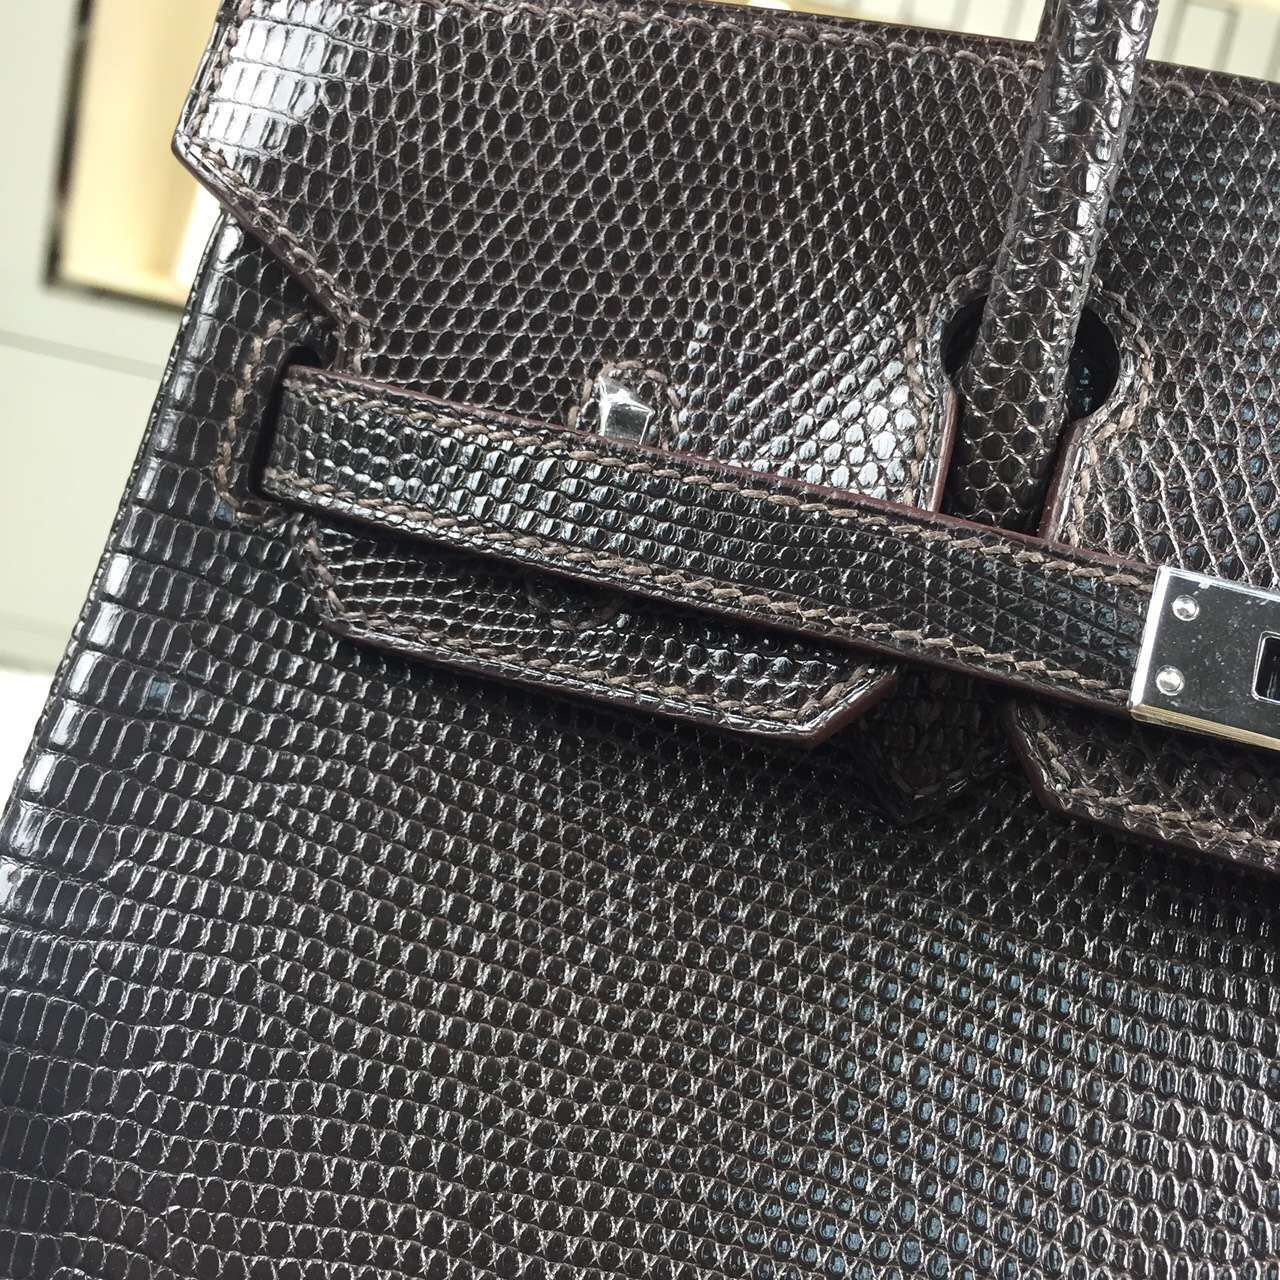 Online Shopping Hermes Dark Coffee Lizard Skin Leather Birkin Bag25cm